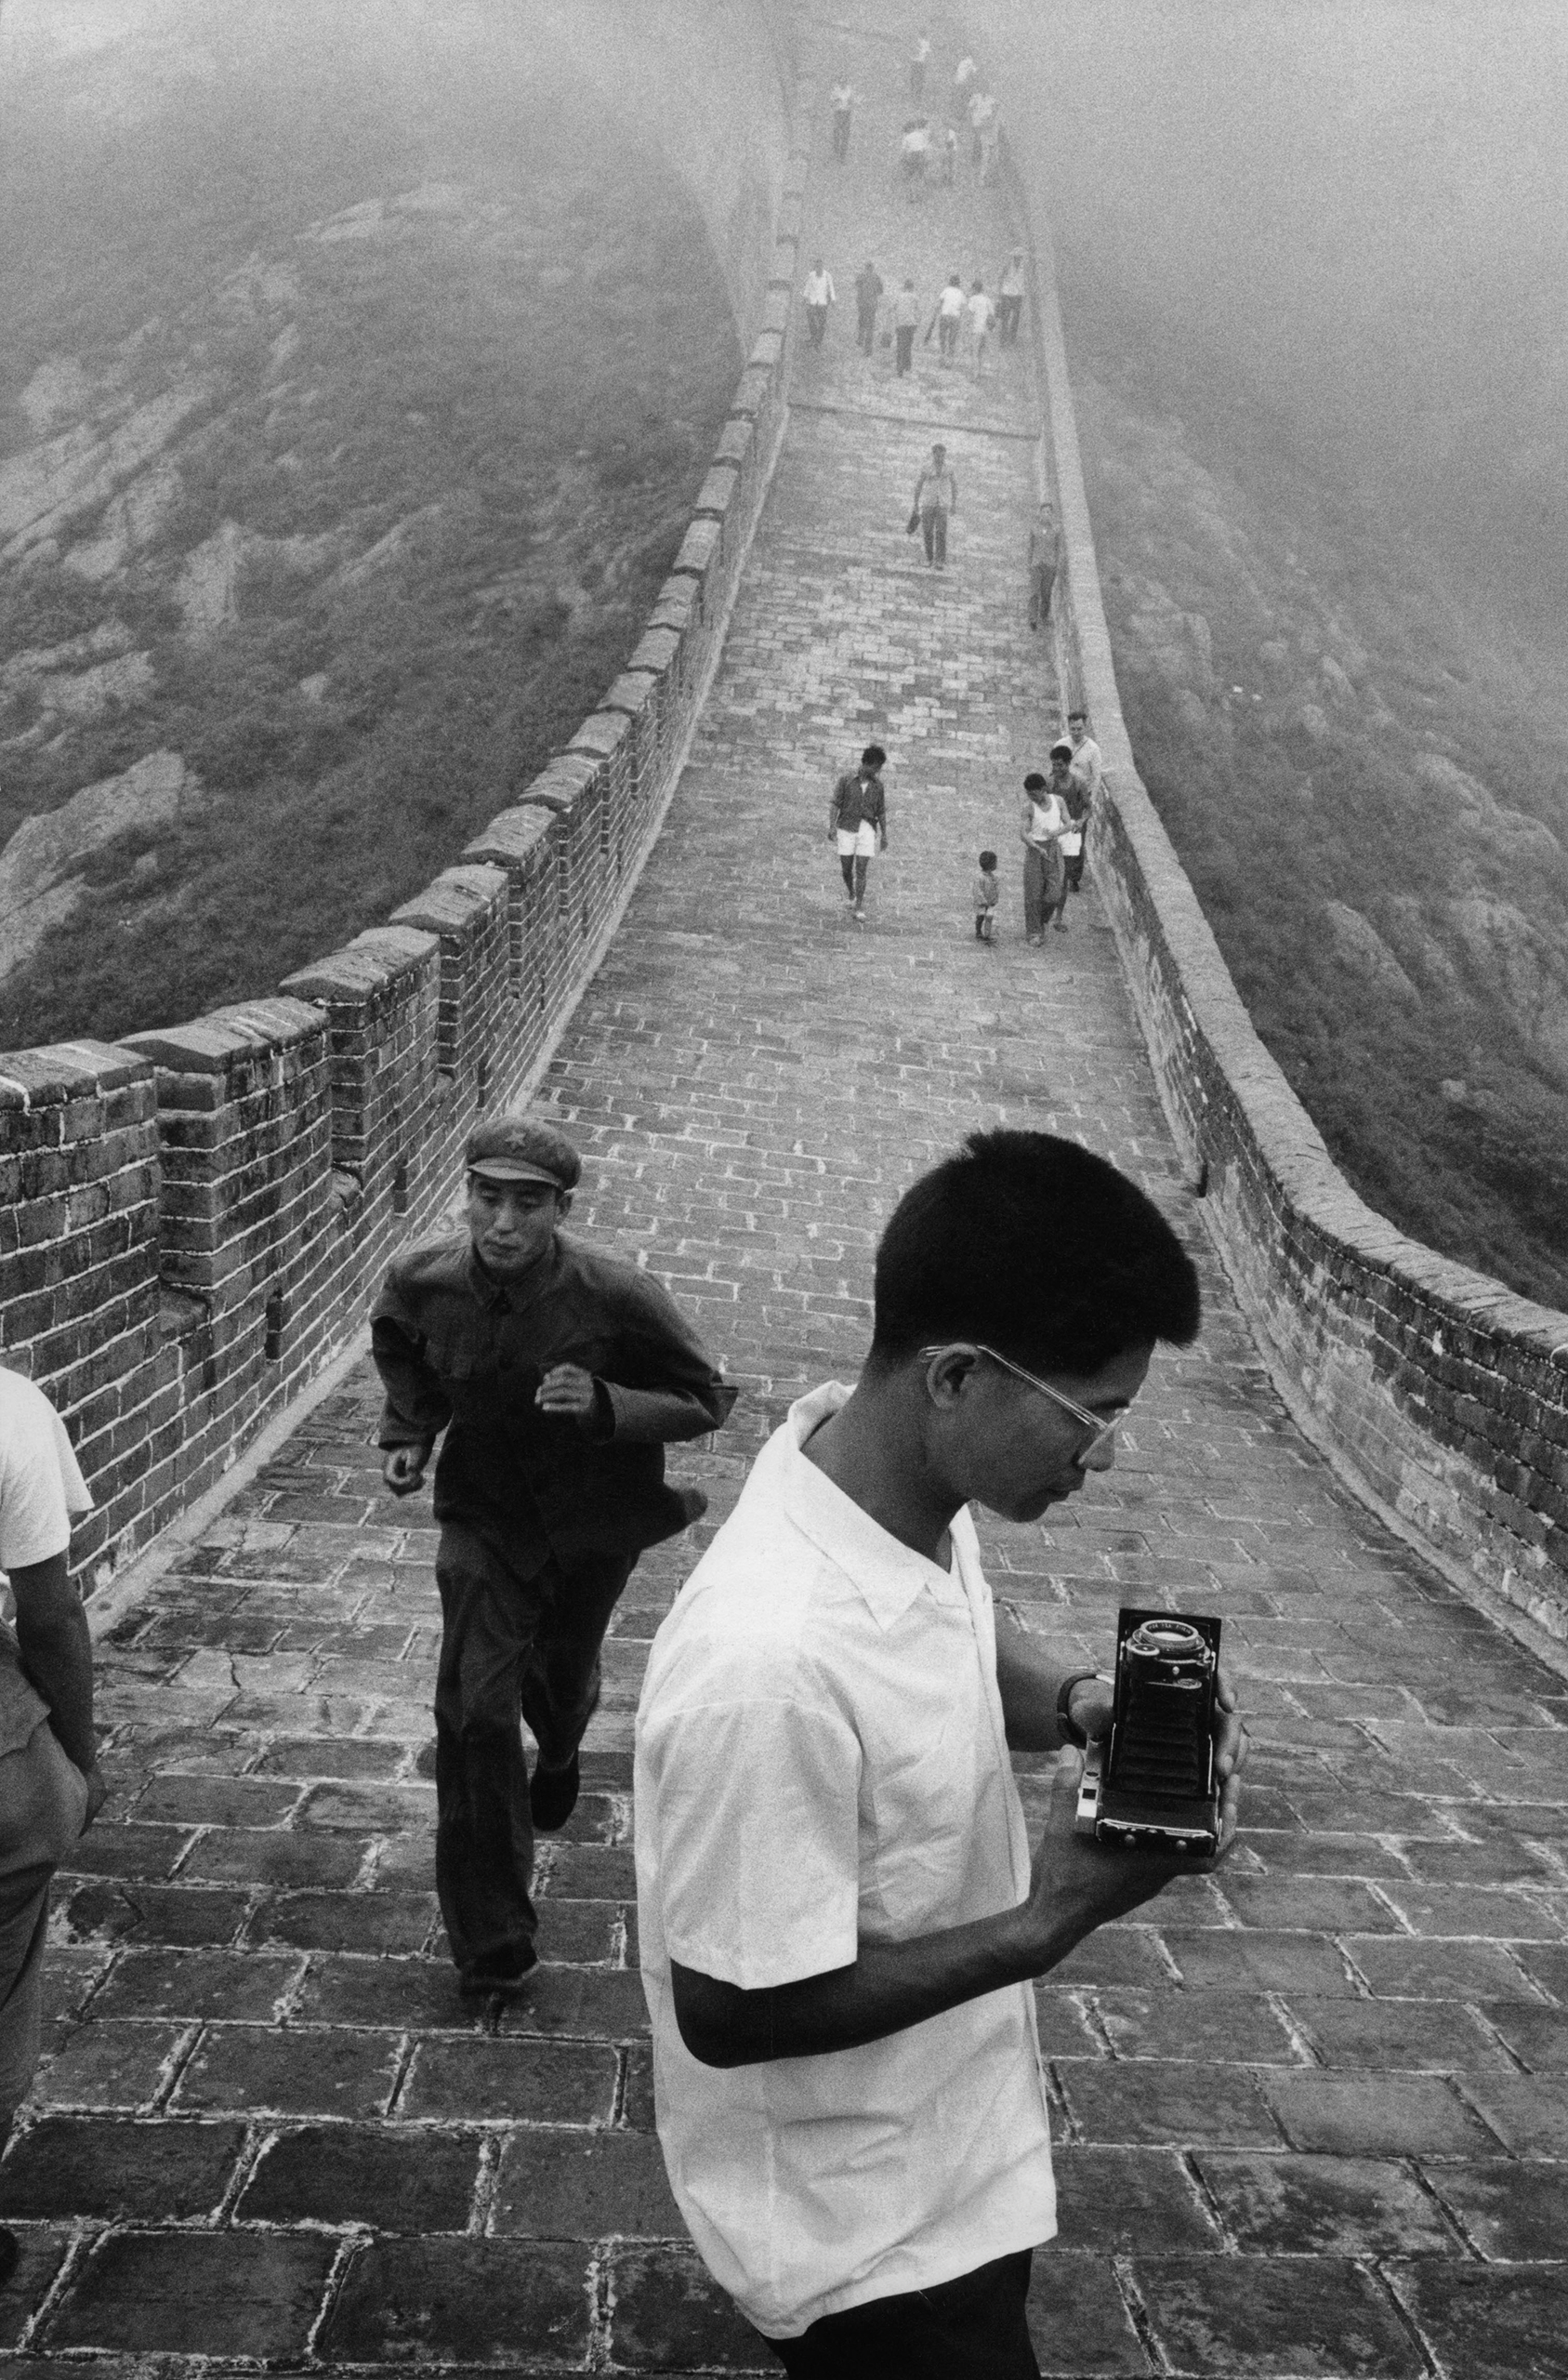 The Great Wall in Hebei Province, China, 1971.